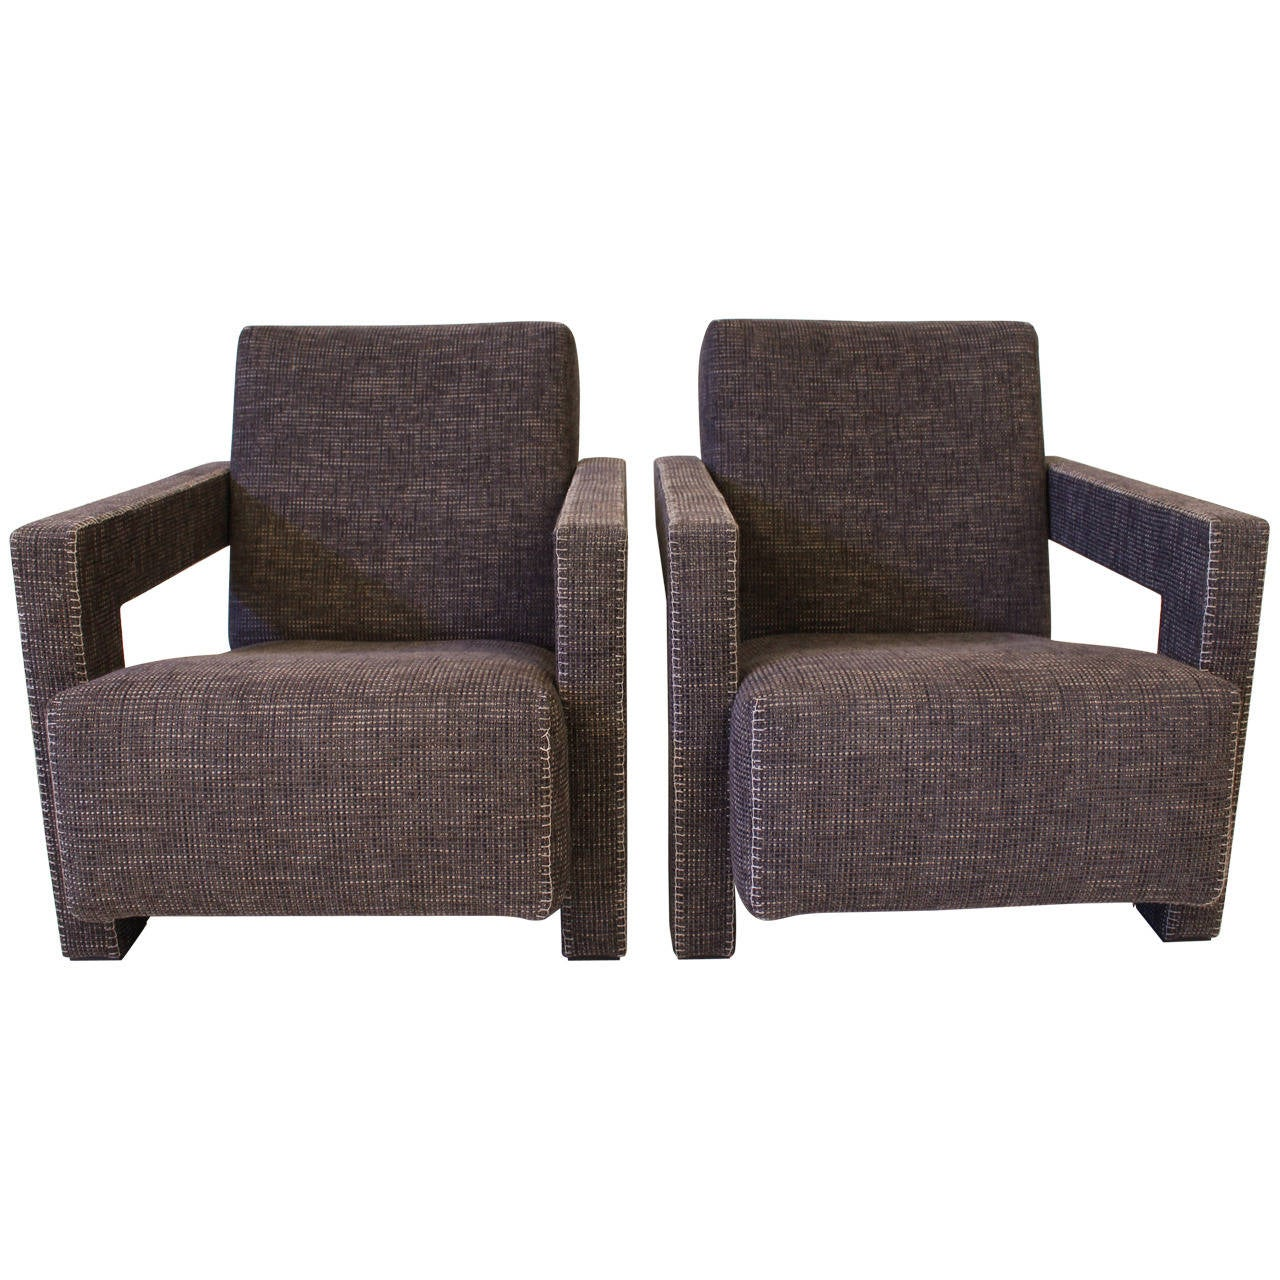 """Pair Of """"Utrecht"""" Chairs By Gerrit Rietveld For Cassina At"""